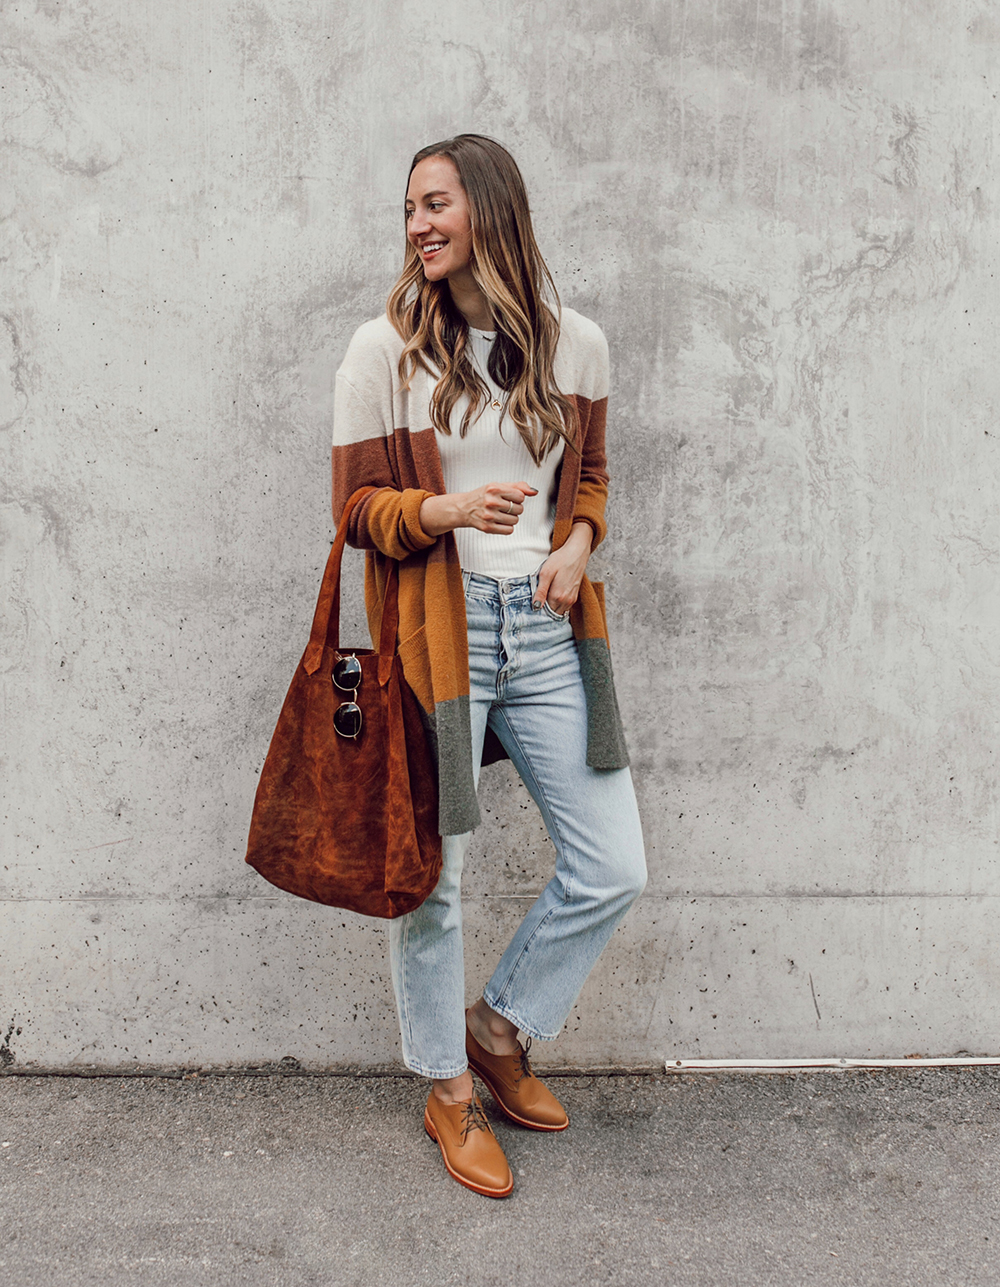 livvyland-blog-olivia-watson-austin-texas-fashion-lifestyle-blogger-nisolo-james-oxford-fall-outfit-idea-madewell-kent-cardigan-5